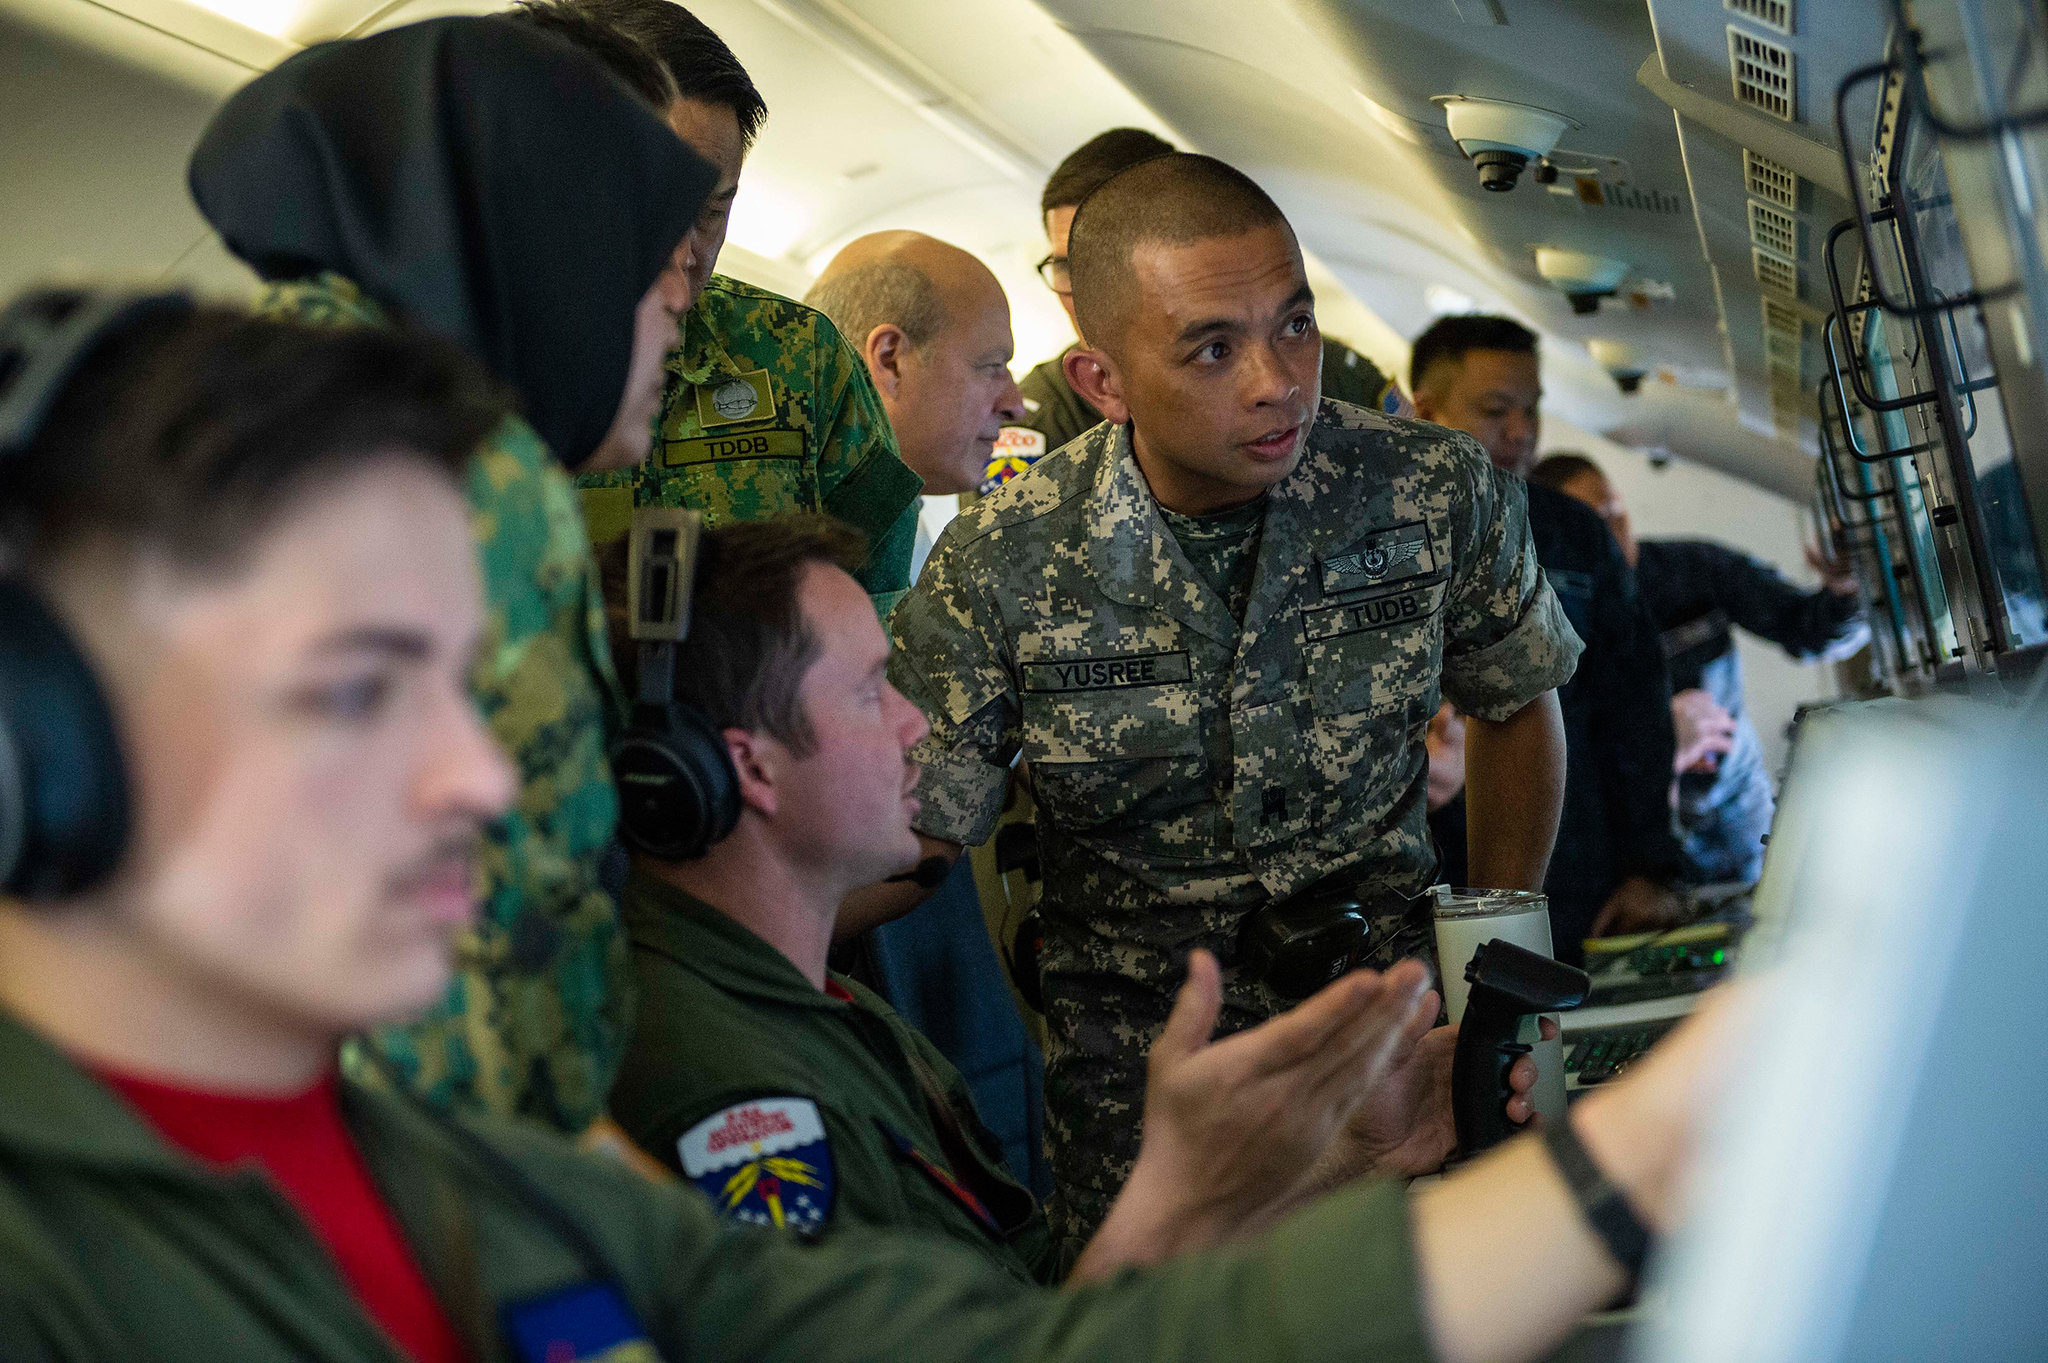 Royal Brunei armed forces discuss aircraft capabilities with U.S. Navy sailors inside a P-8 Poseidon aircraft on Oct. 23, 2019, during a distinguished visitor tour of the aircraft in support of Cooperation Afloat Readiness and Training (CARAT) Brunei at Rimba Air Base. (Mass Communication Specialist 2nd Class Christopher A. Veloicaza/Navy)